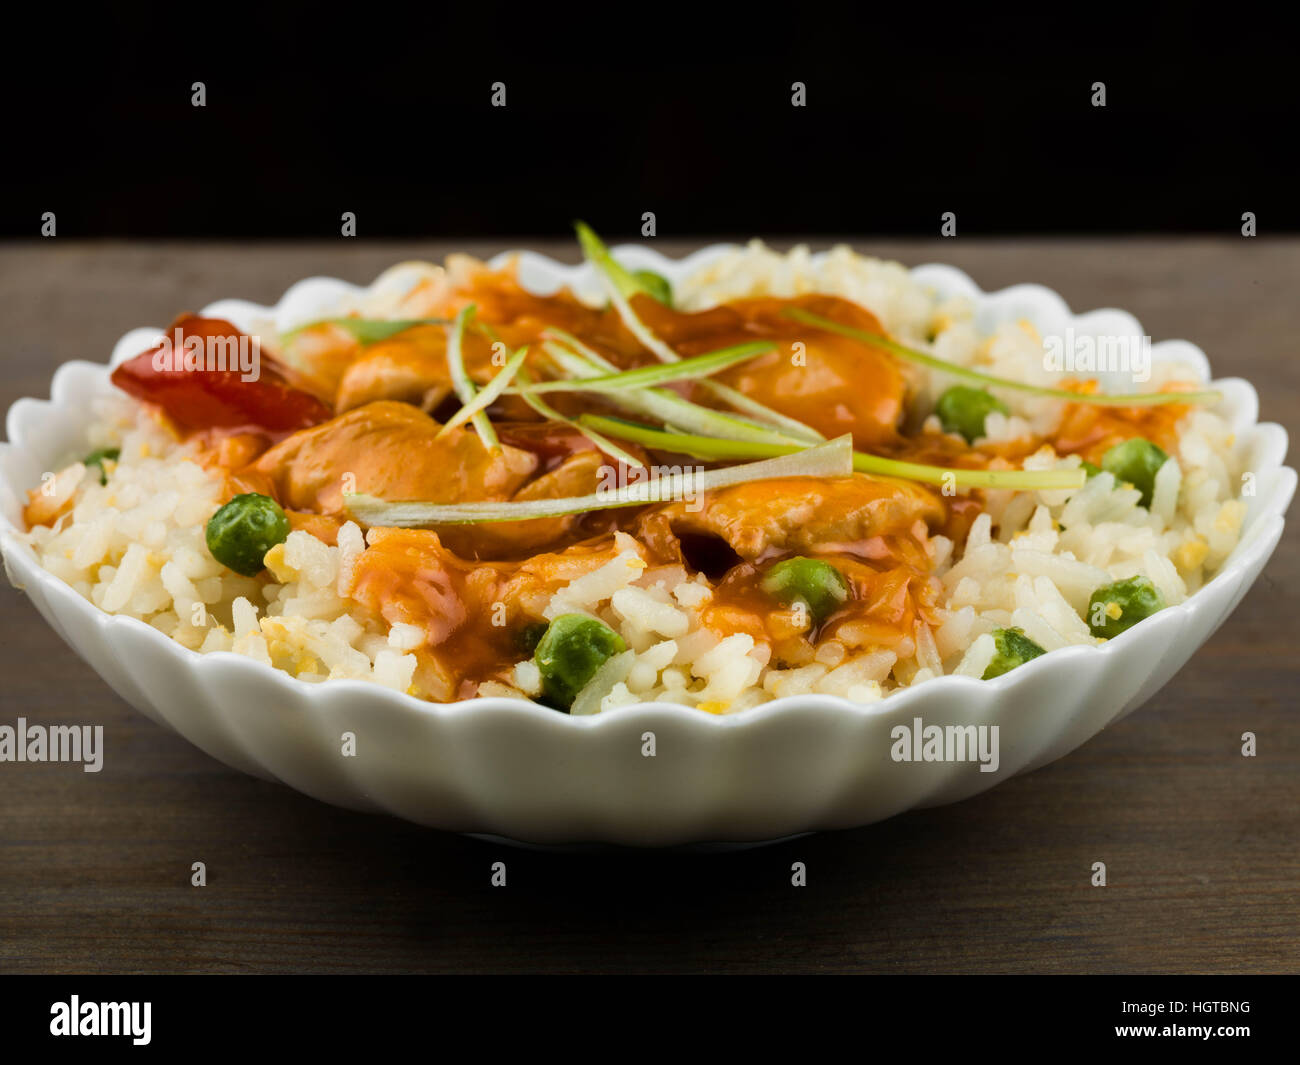 Chinese Sweet and Sour Chicken With Egg Fried Rice Meal - Stock Image